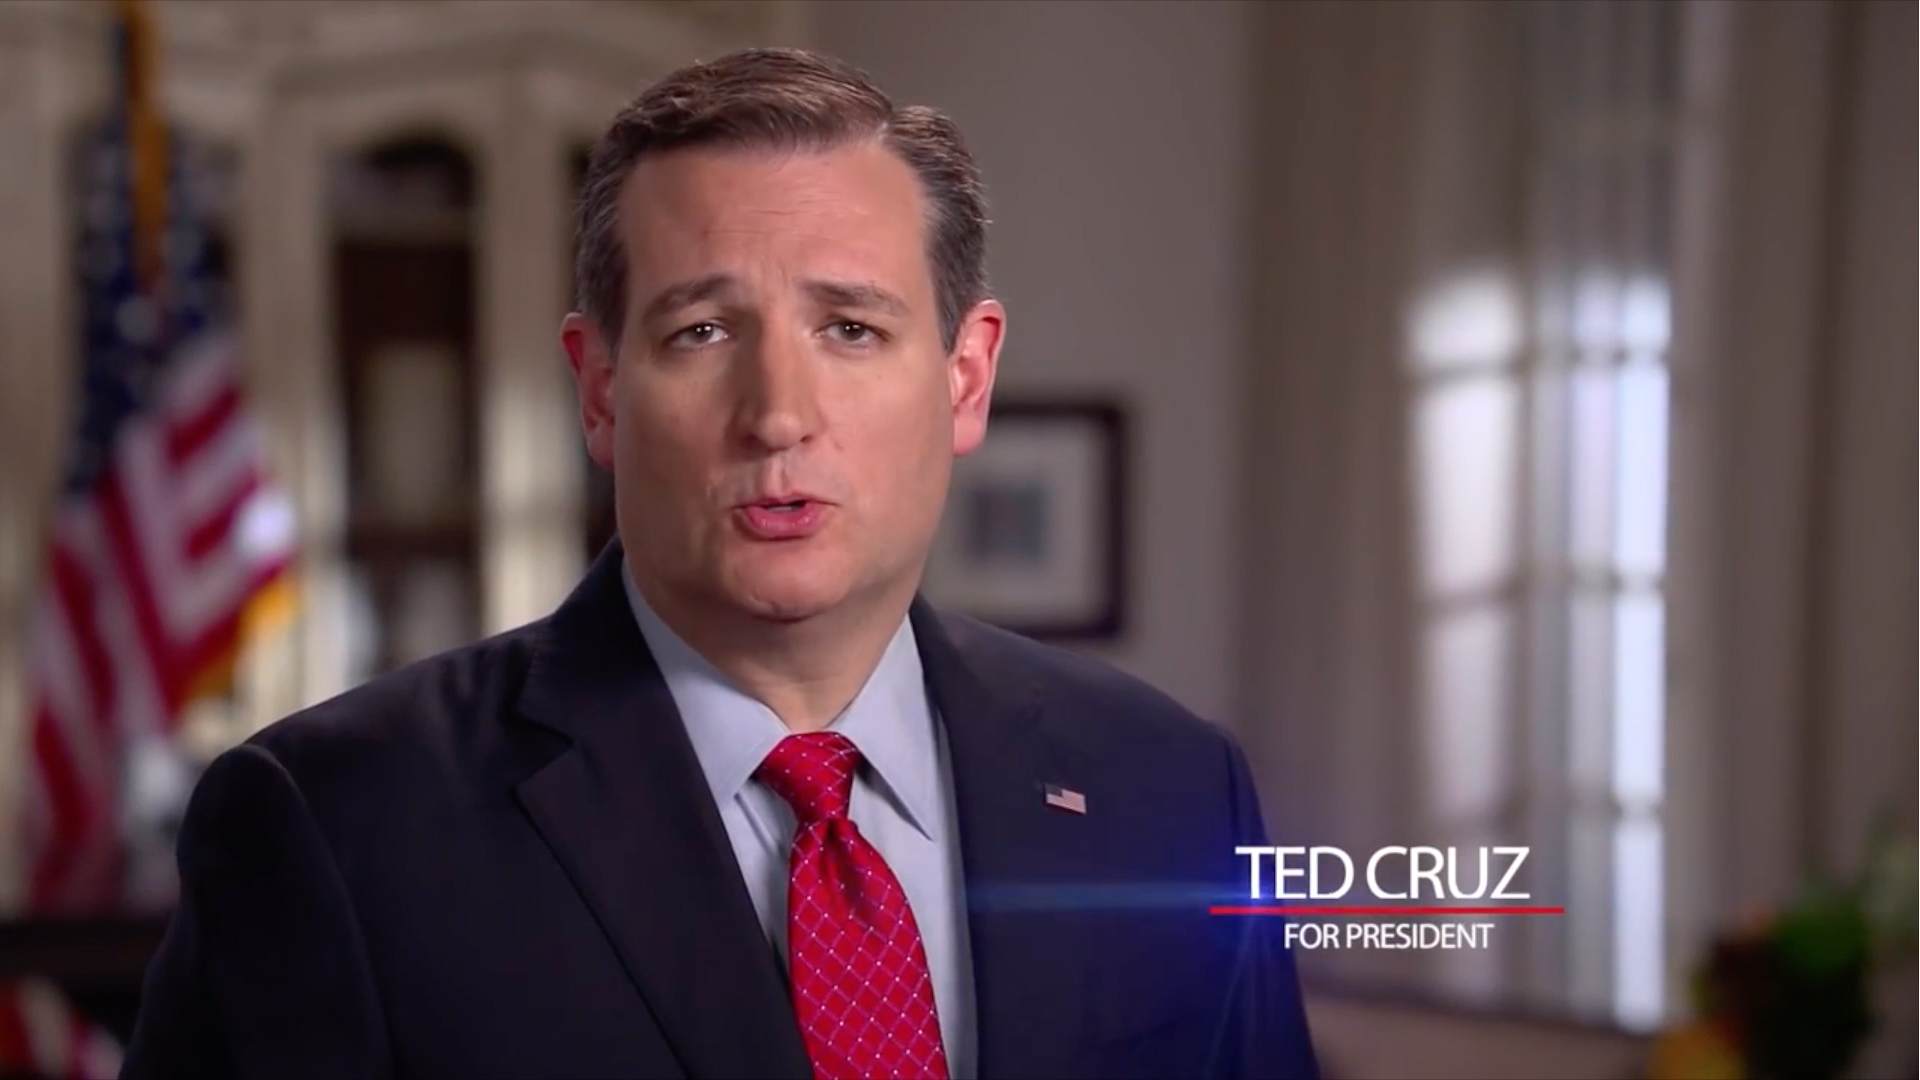 Ted Cruz HD Desktop